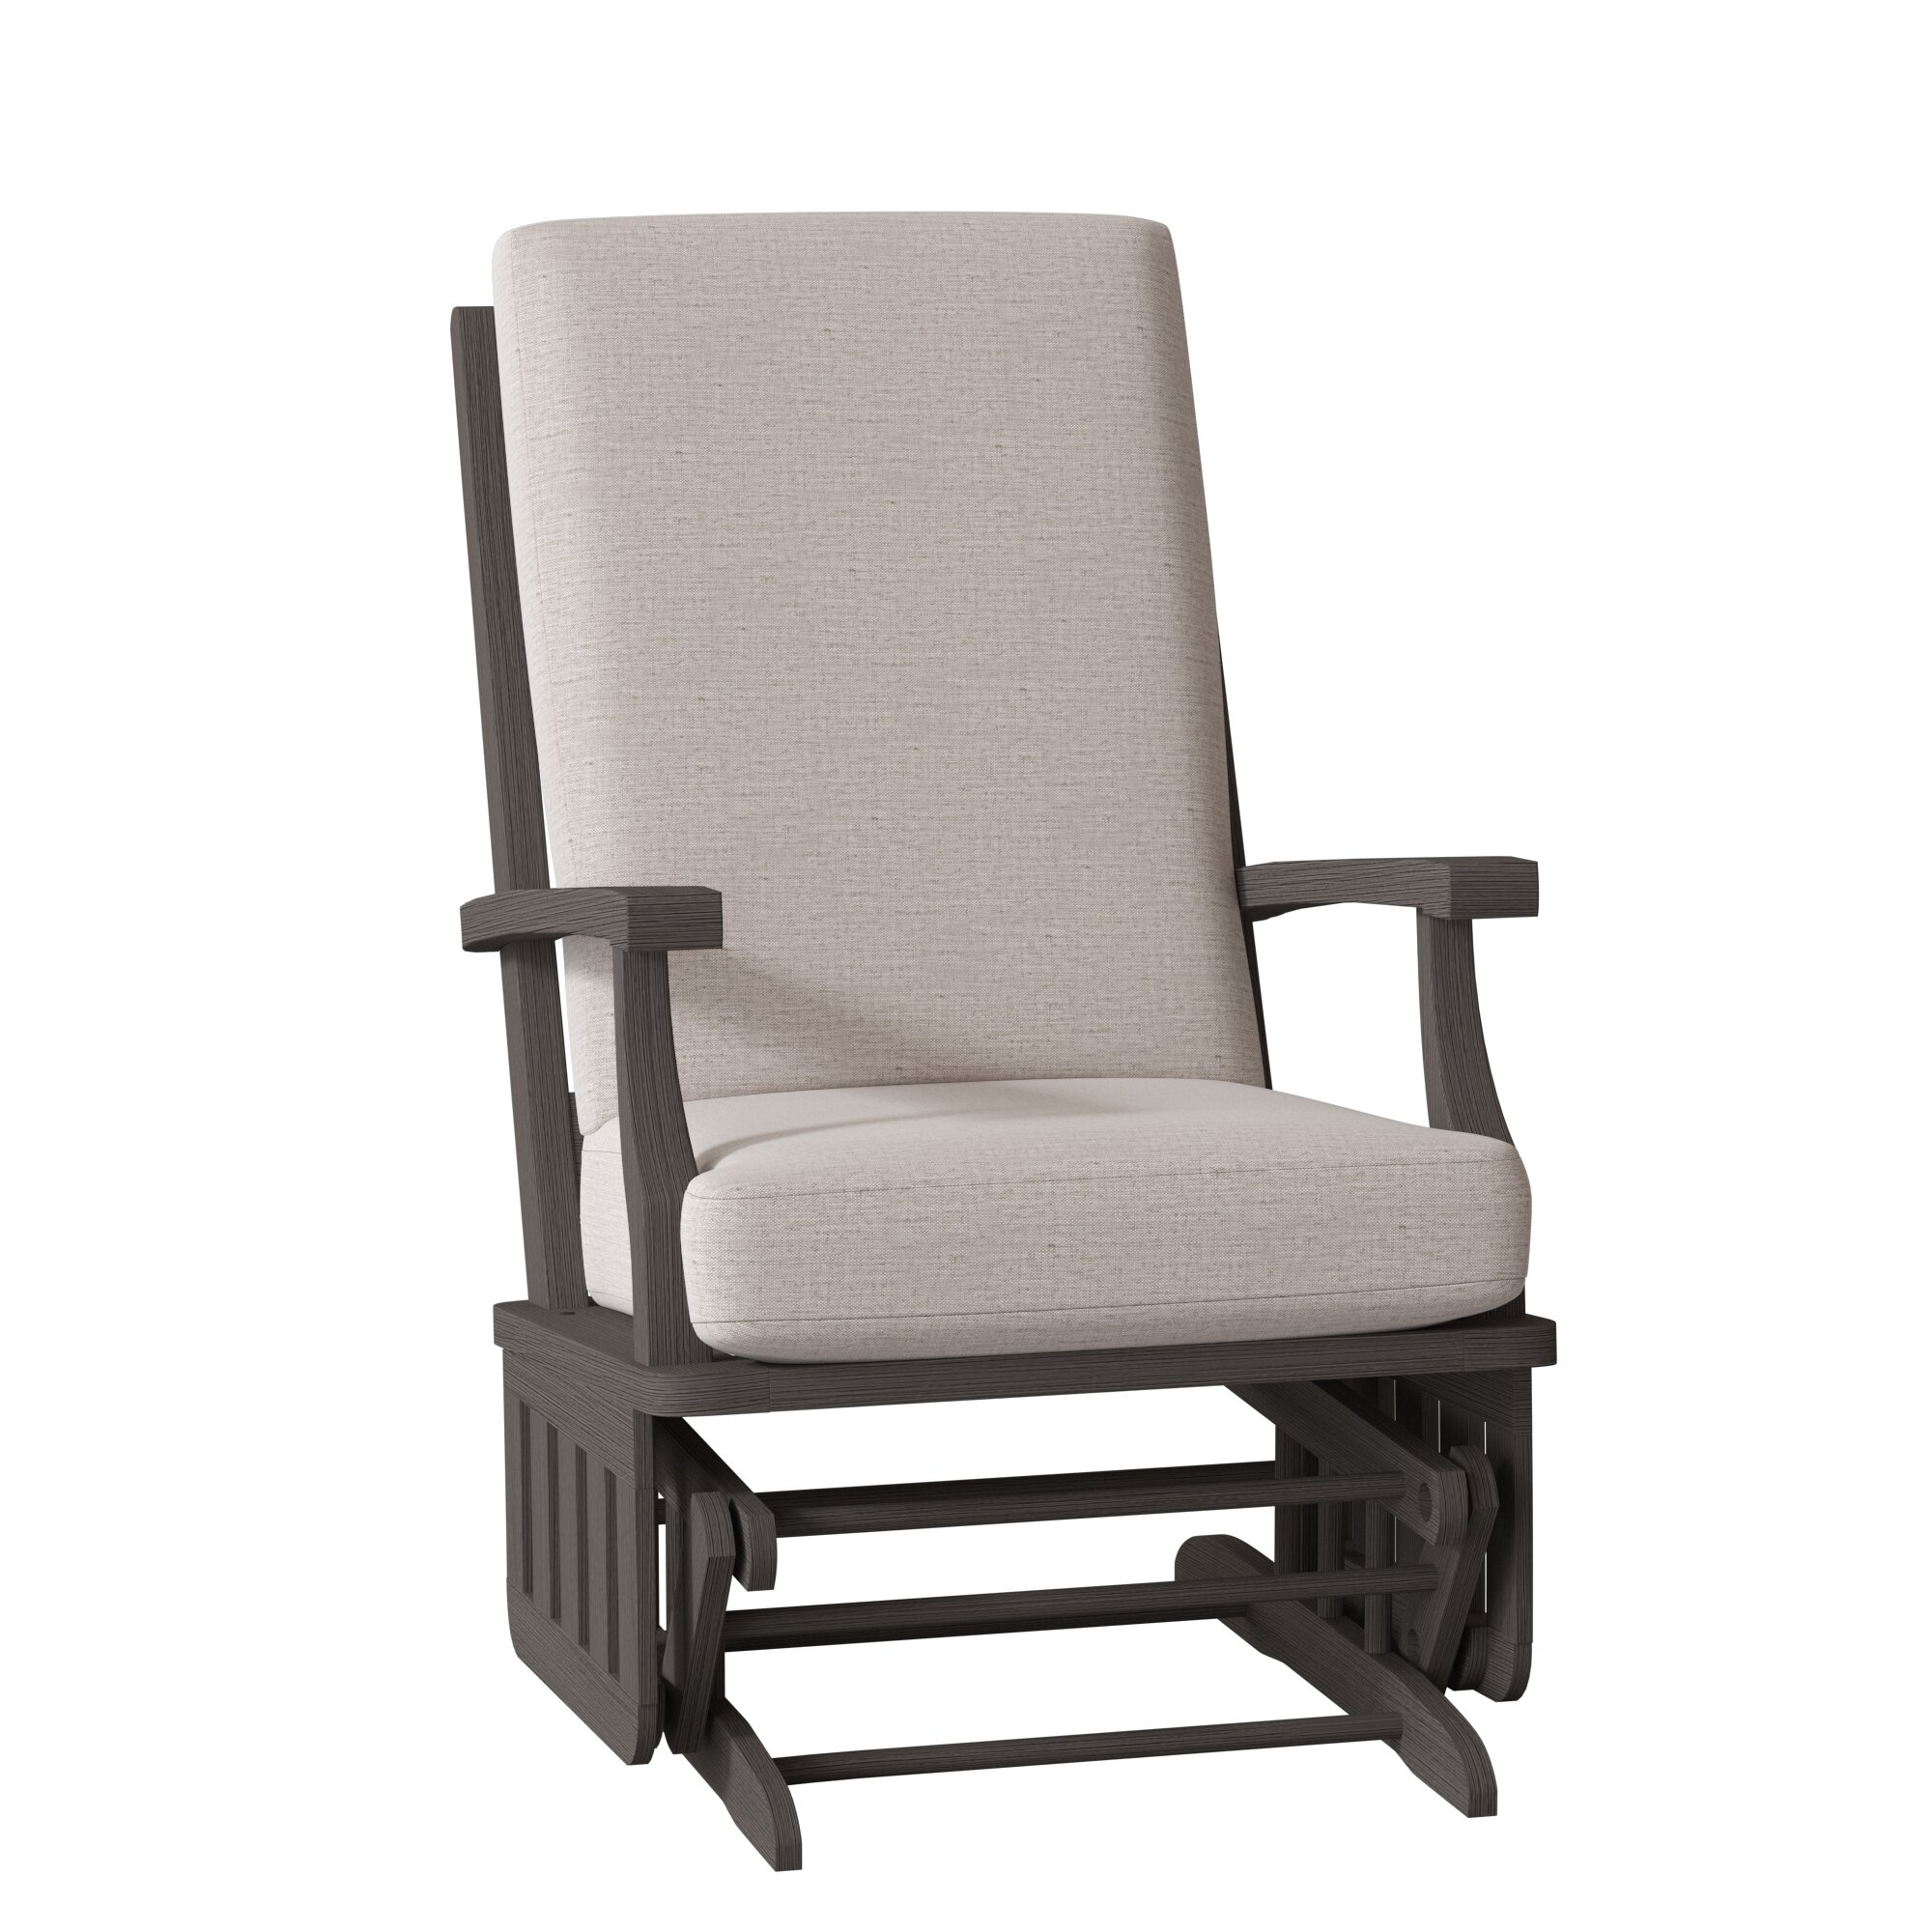 Rowberrow Rocking Chair Glider